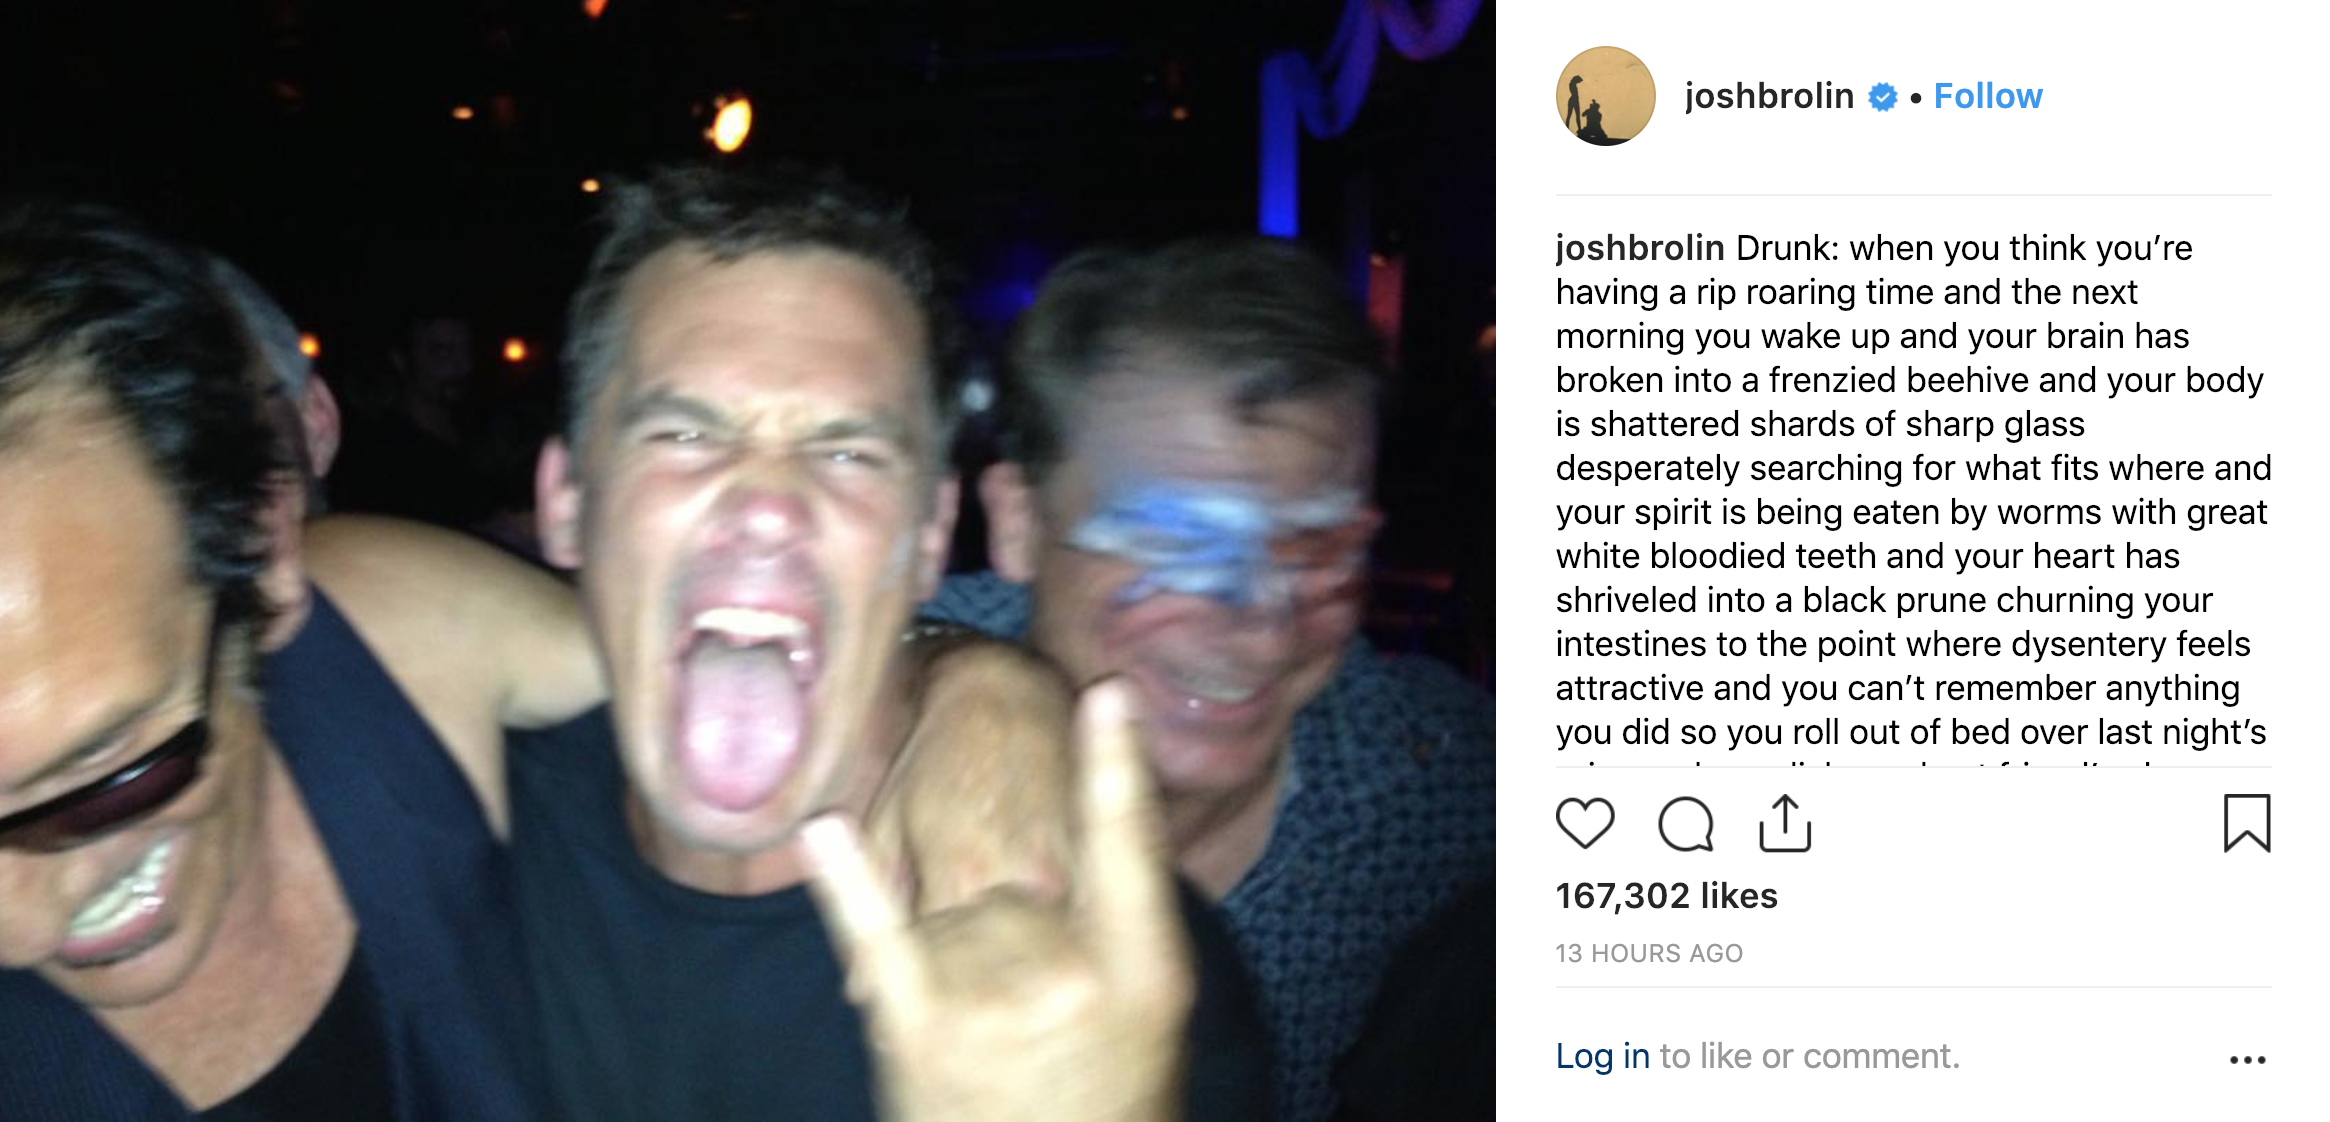 Josh Brolin opens up about his heavy drinking days. Credit: Josh Brolin/Instagram